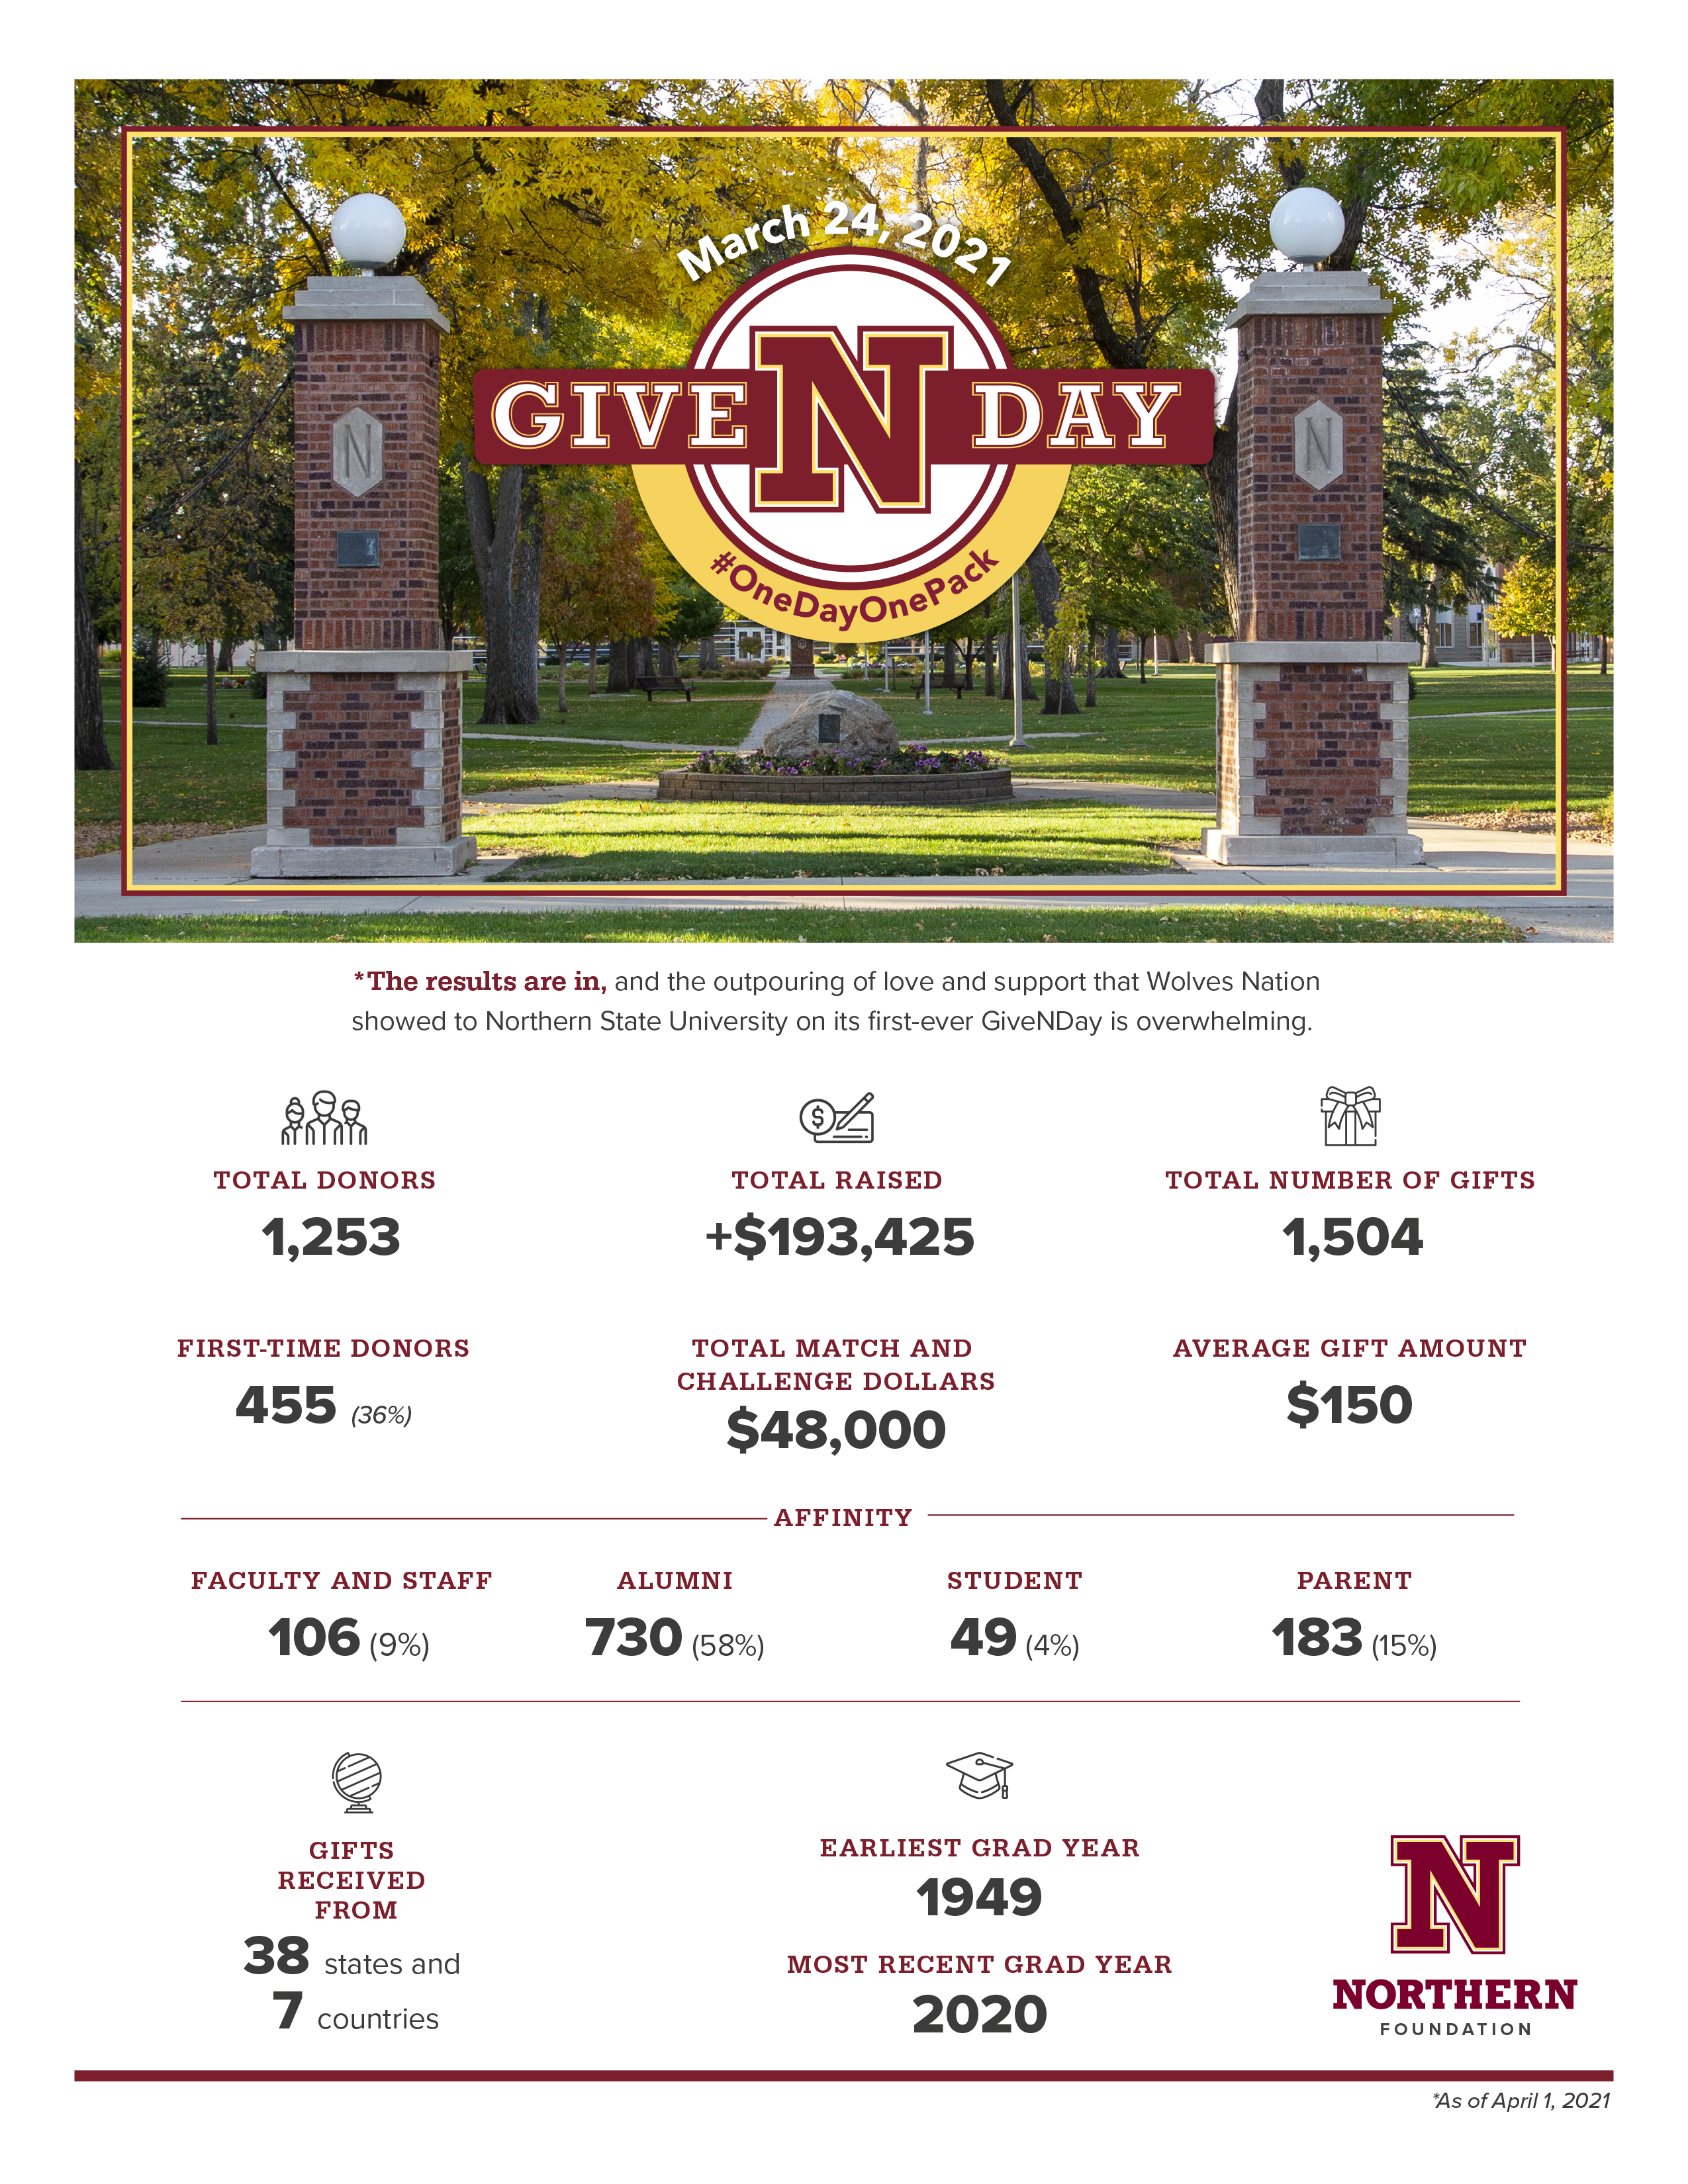 GiveNDay fundraising totals